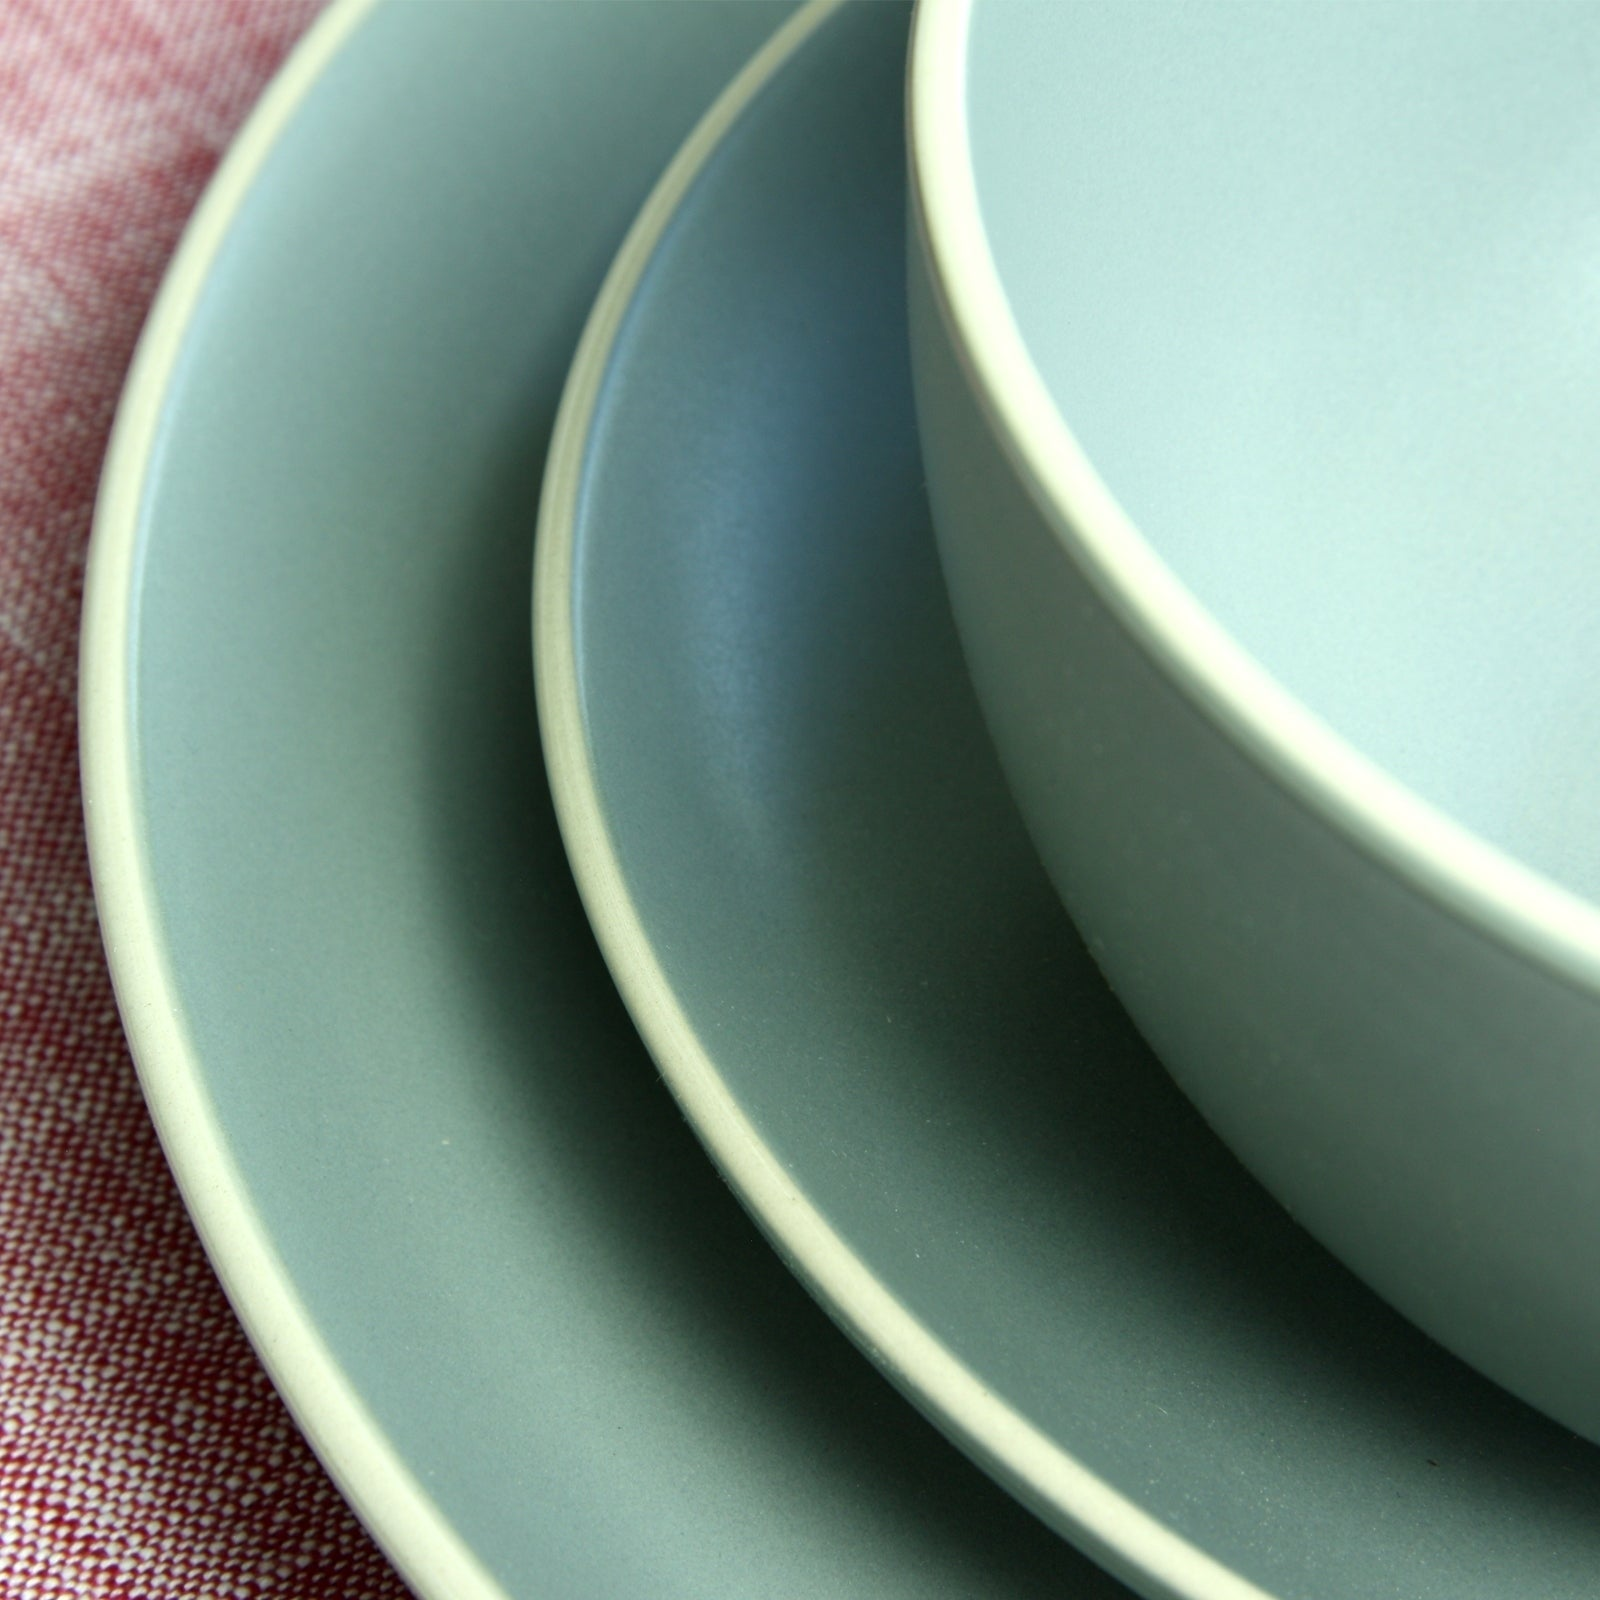 Gibson Home Rockaway 12-Piece Stoneware Dinnerware Set In Matte Teal - Free Shipping Today - Overstock - 24263893 & Gibson Home Rockaway 12-Piece Stoneware Dinnerware Set In Matte Teal ...